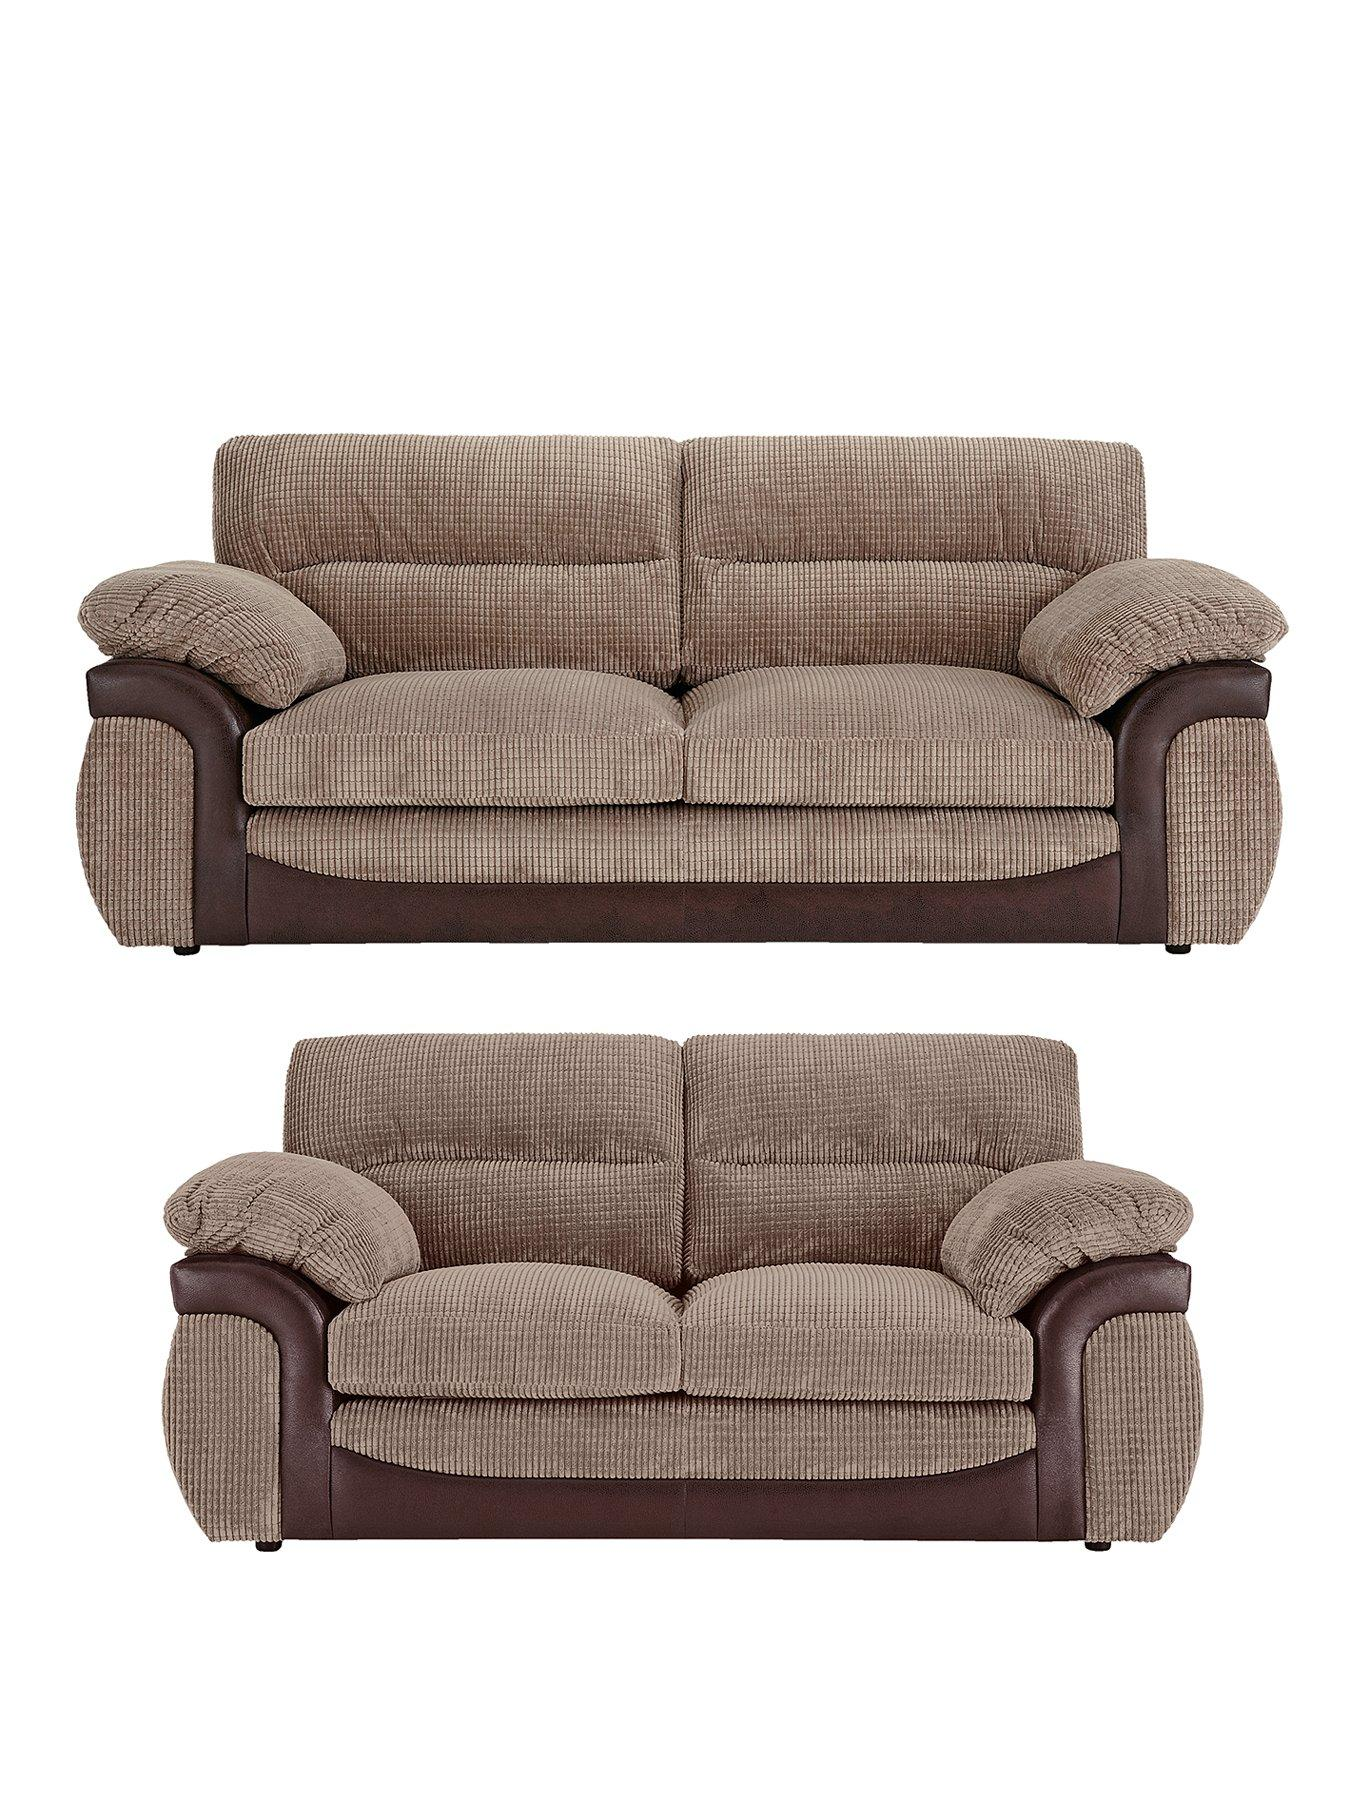 baby sofa seater come bed photos lyla 3 43 2 set buy and save 799